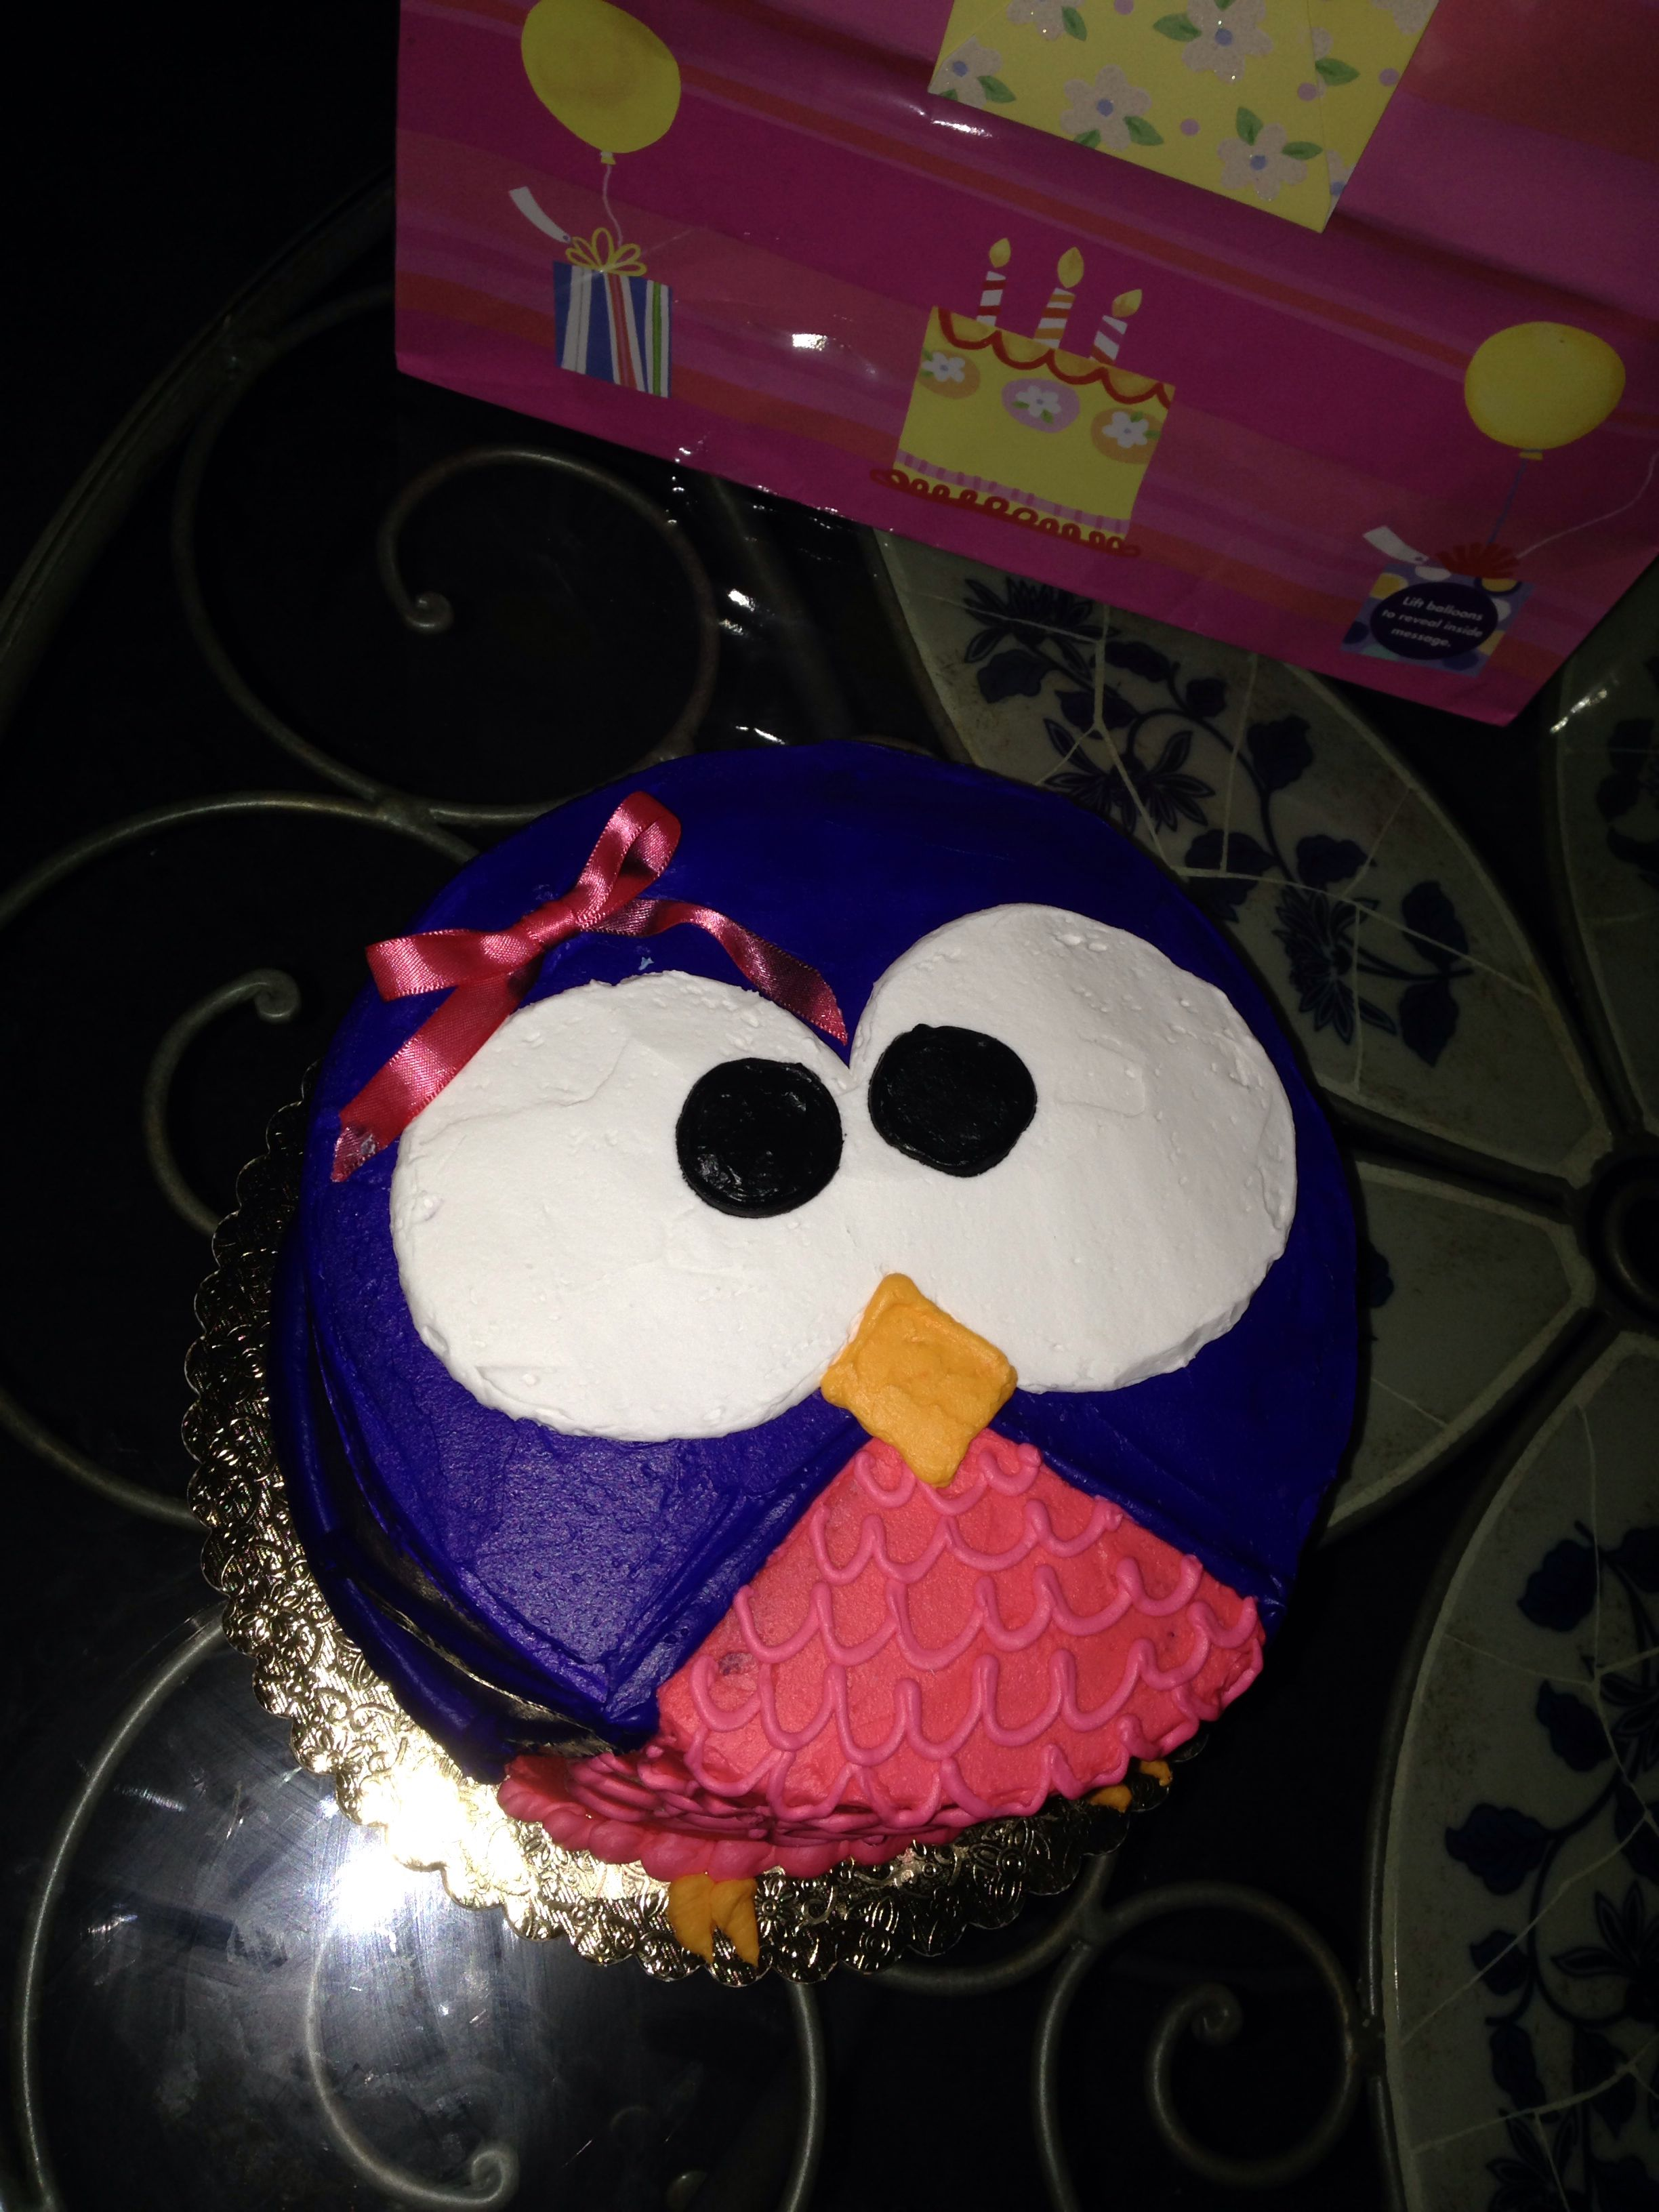 Tremendous Cute Owl Cake For A 2Nd Birthday Easy To Make Cake But Still So Birthday Cards Printable Riciscafe Filternl